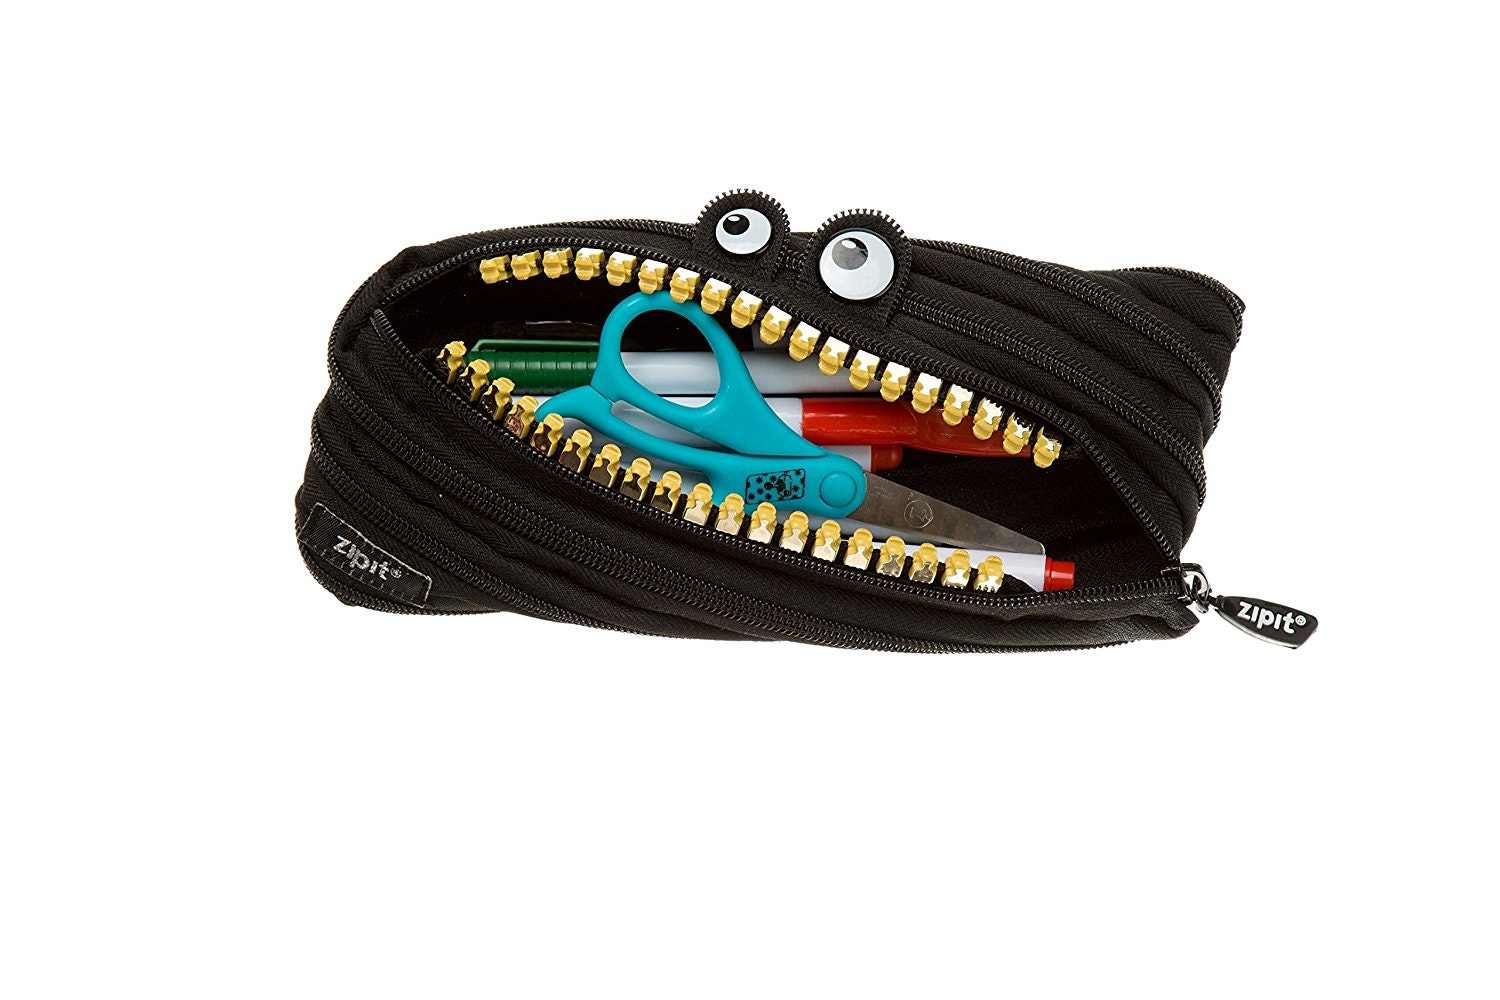 This funky pencil case that smiles at you